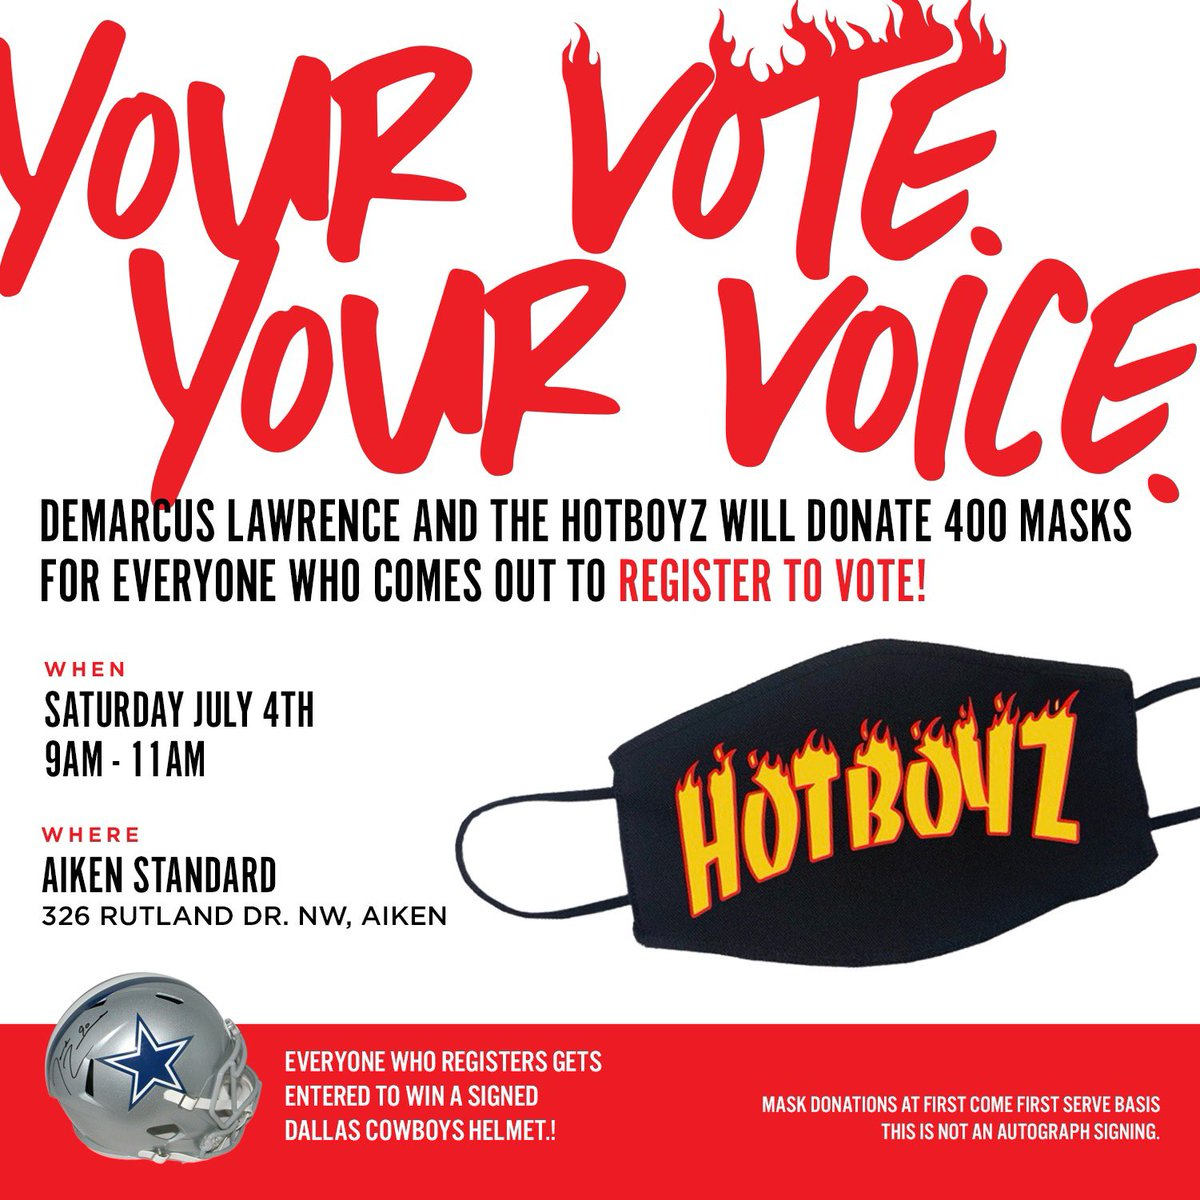 Vote the CHANGE you want to see in the WORLD. For those un-registered voters in the Aiken area come down to the @aikenstandard tomorrow from 9am-11am to register to vote & receive a free @HotBoyzTM mask &  be entered to win a @dallascowboys signed helmet! 🤘🏿#YourVoteYourVoice 1/2 https://t.co/g7yCUj0pPb